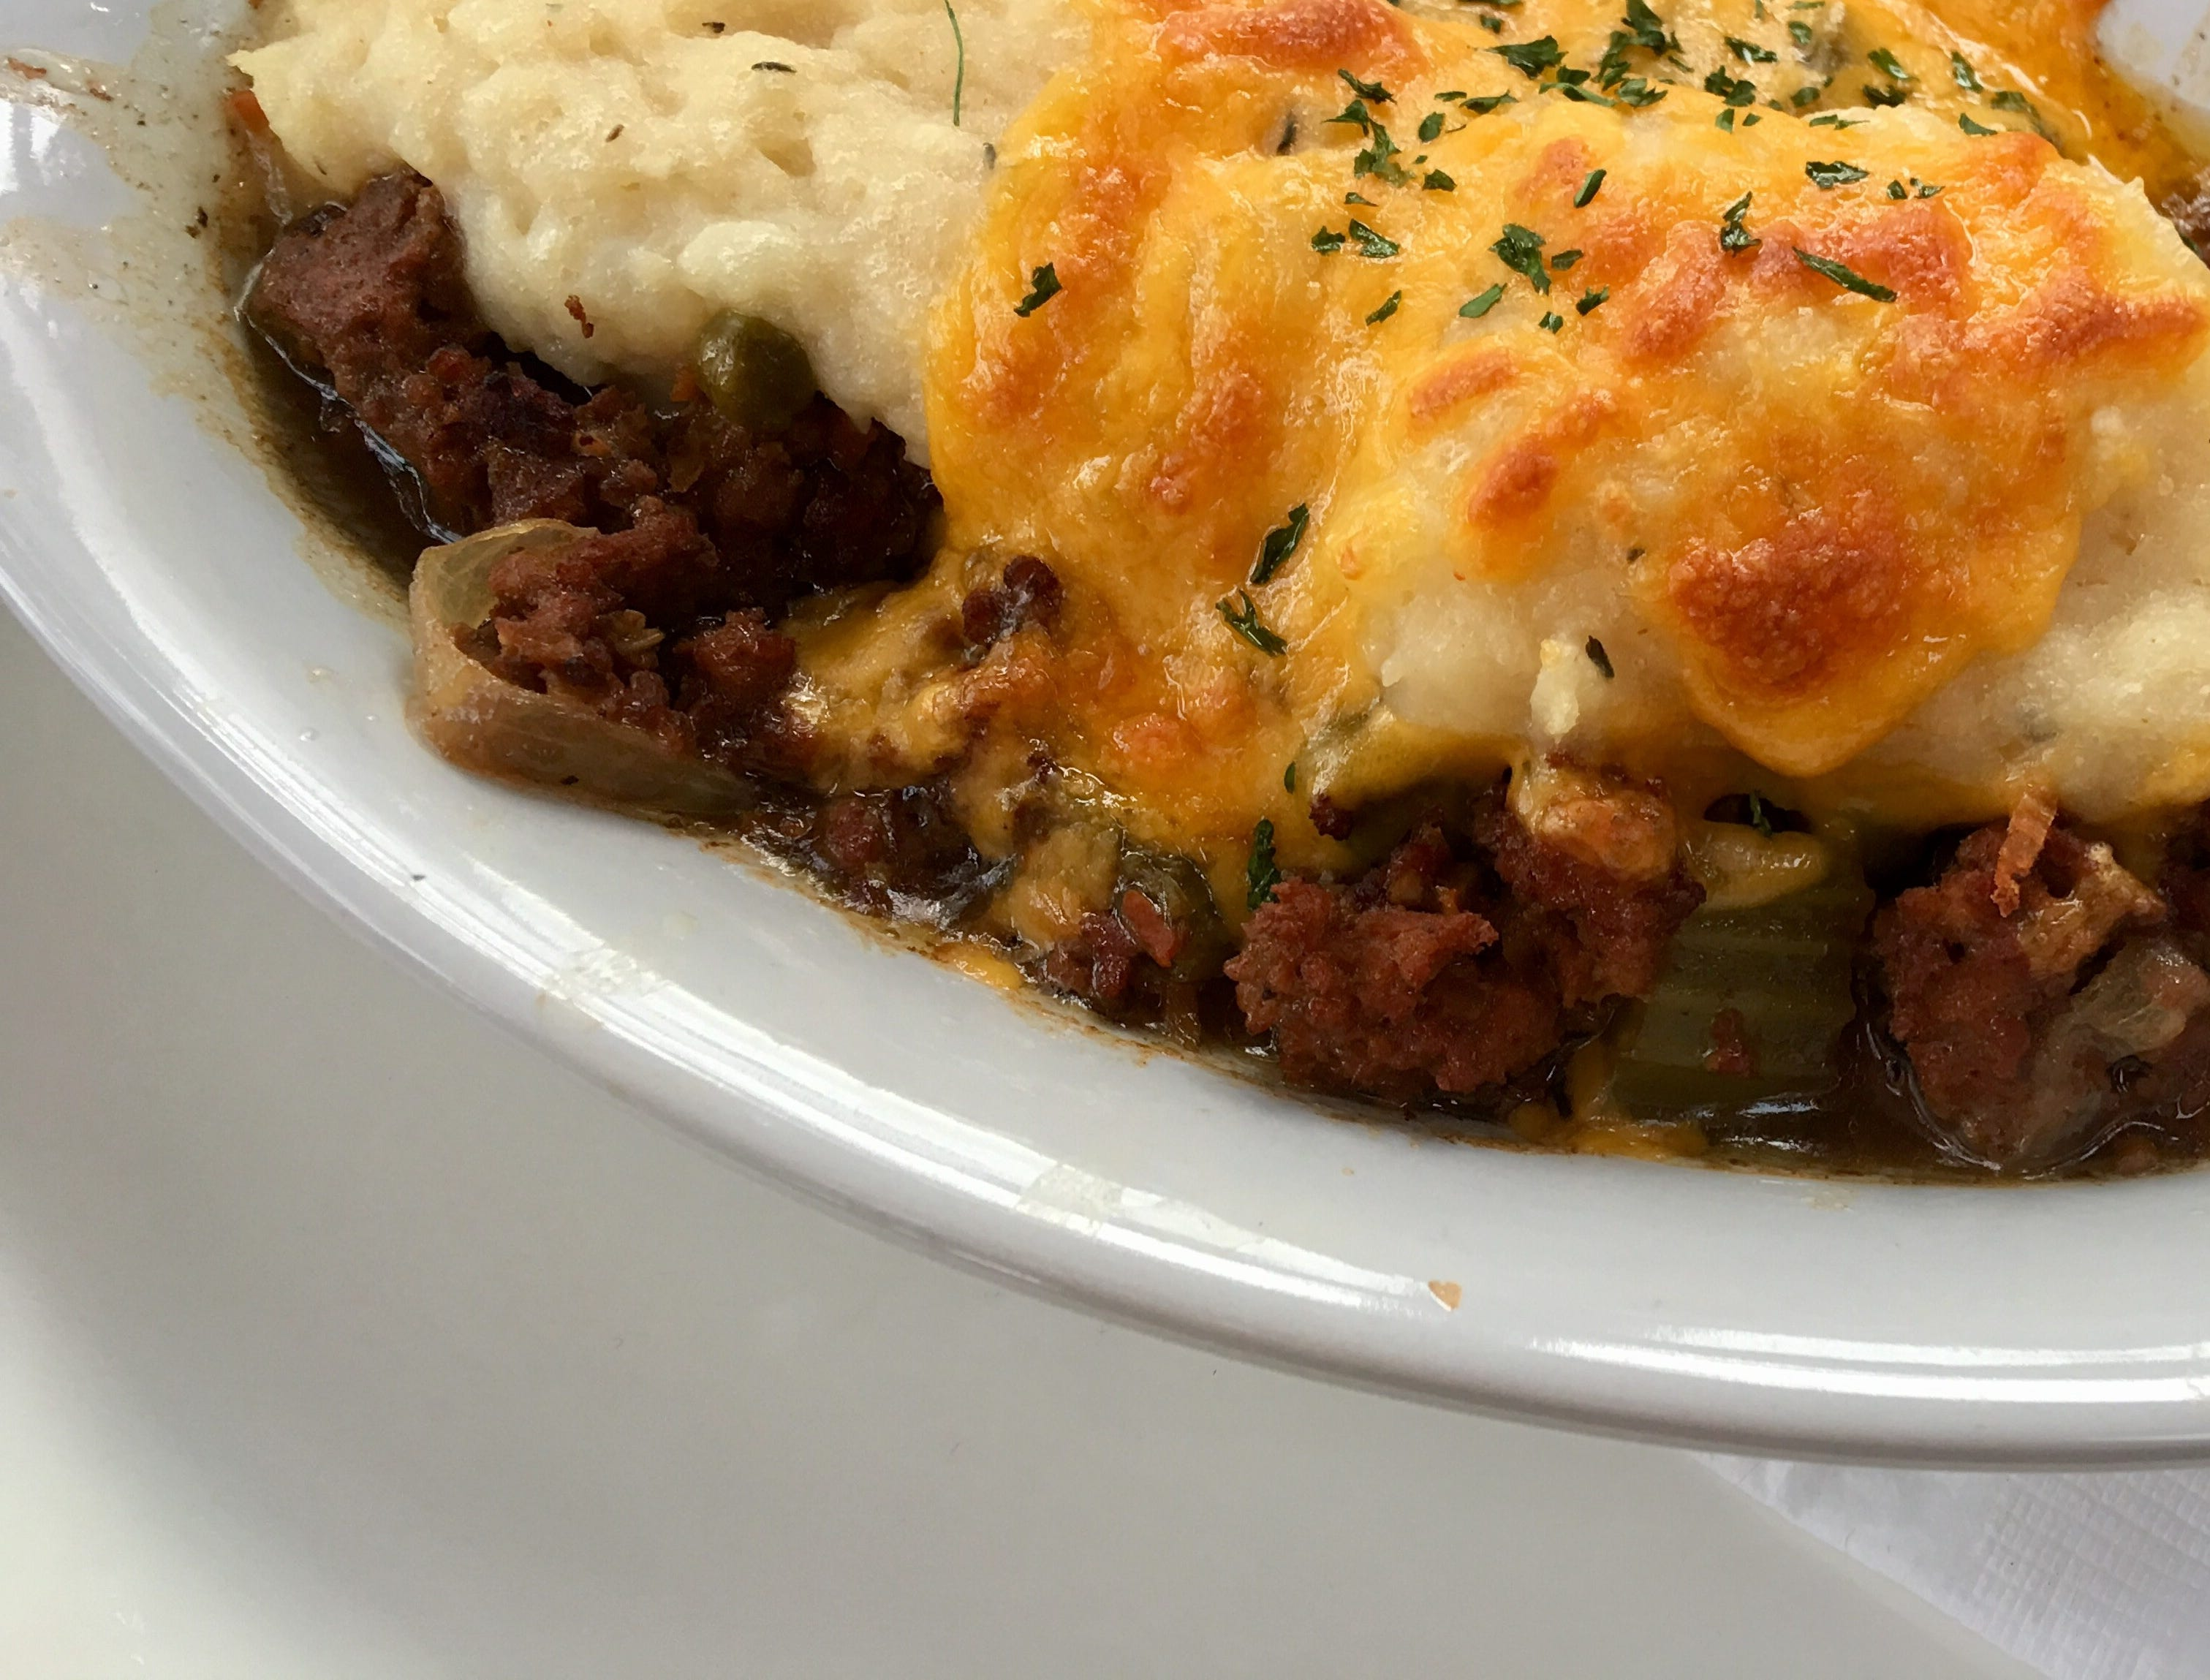 OPEN: The Cottage Pie at Cottage Irish Pub was seasoned the British-Irish way, just savory enough, not watery or oily, and coated with good mash crowned with melted cheese.